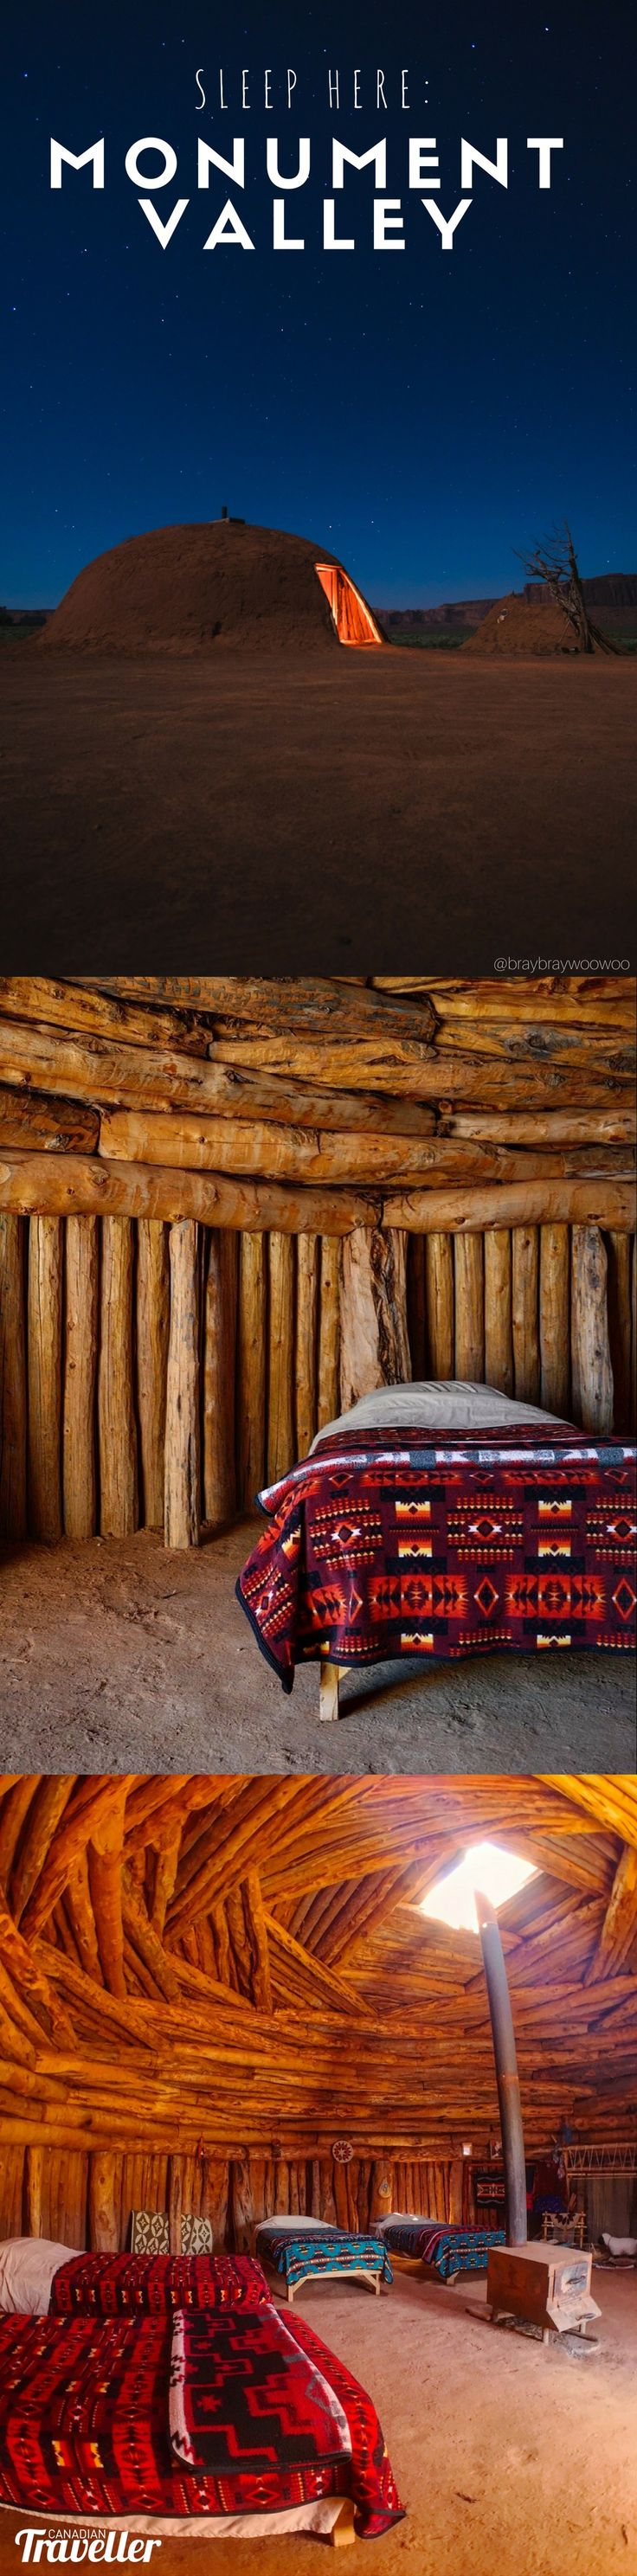 Monument Valley: The most memorable night you don't spend in a hotel via Canadian Traveller Magazine by Jennifer Hubbert. My night spent in an authentic Navajo hogan - the only place you want to sleep in Monument Valley, Utah.